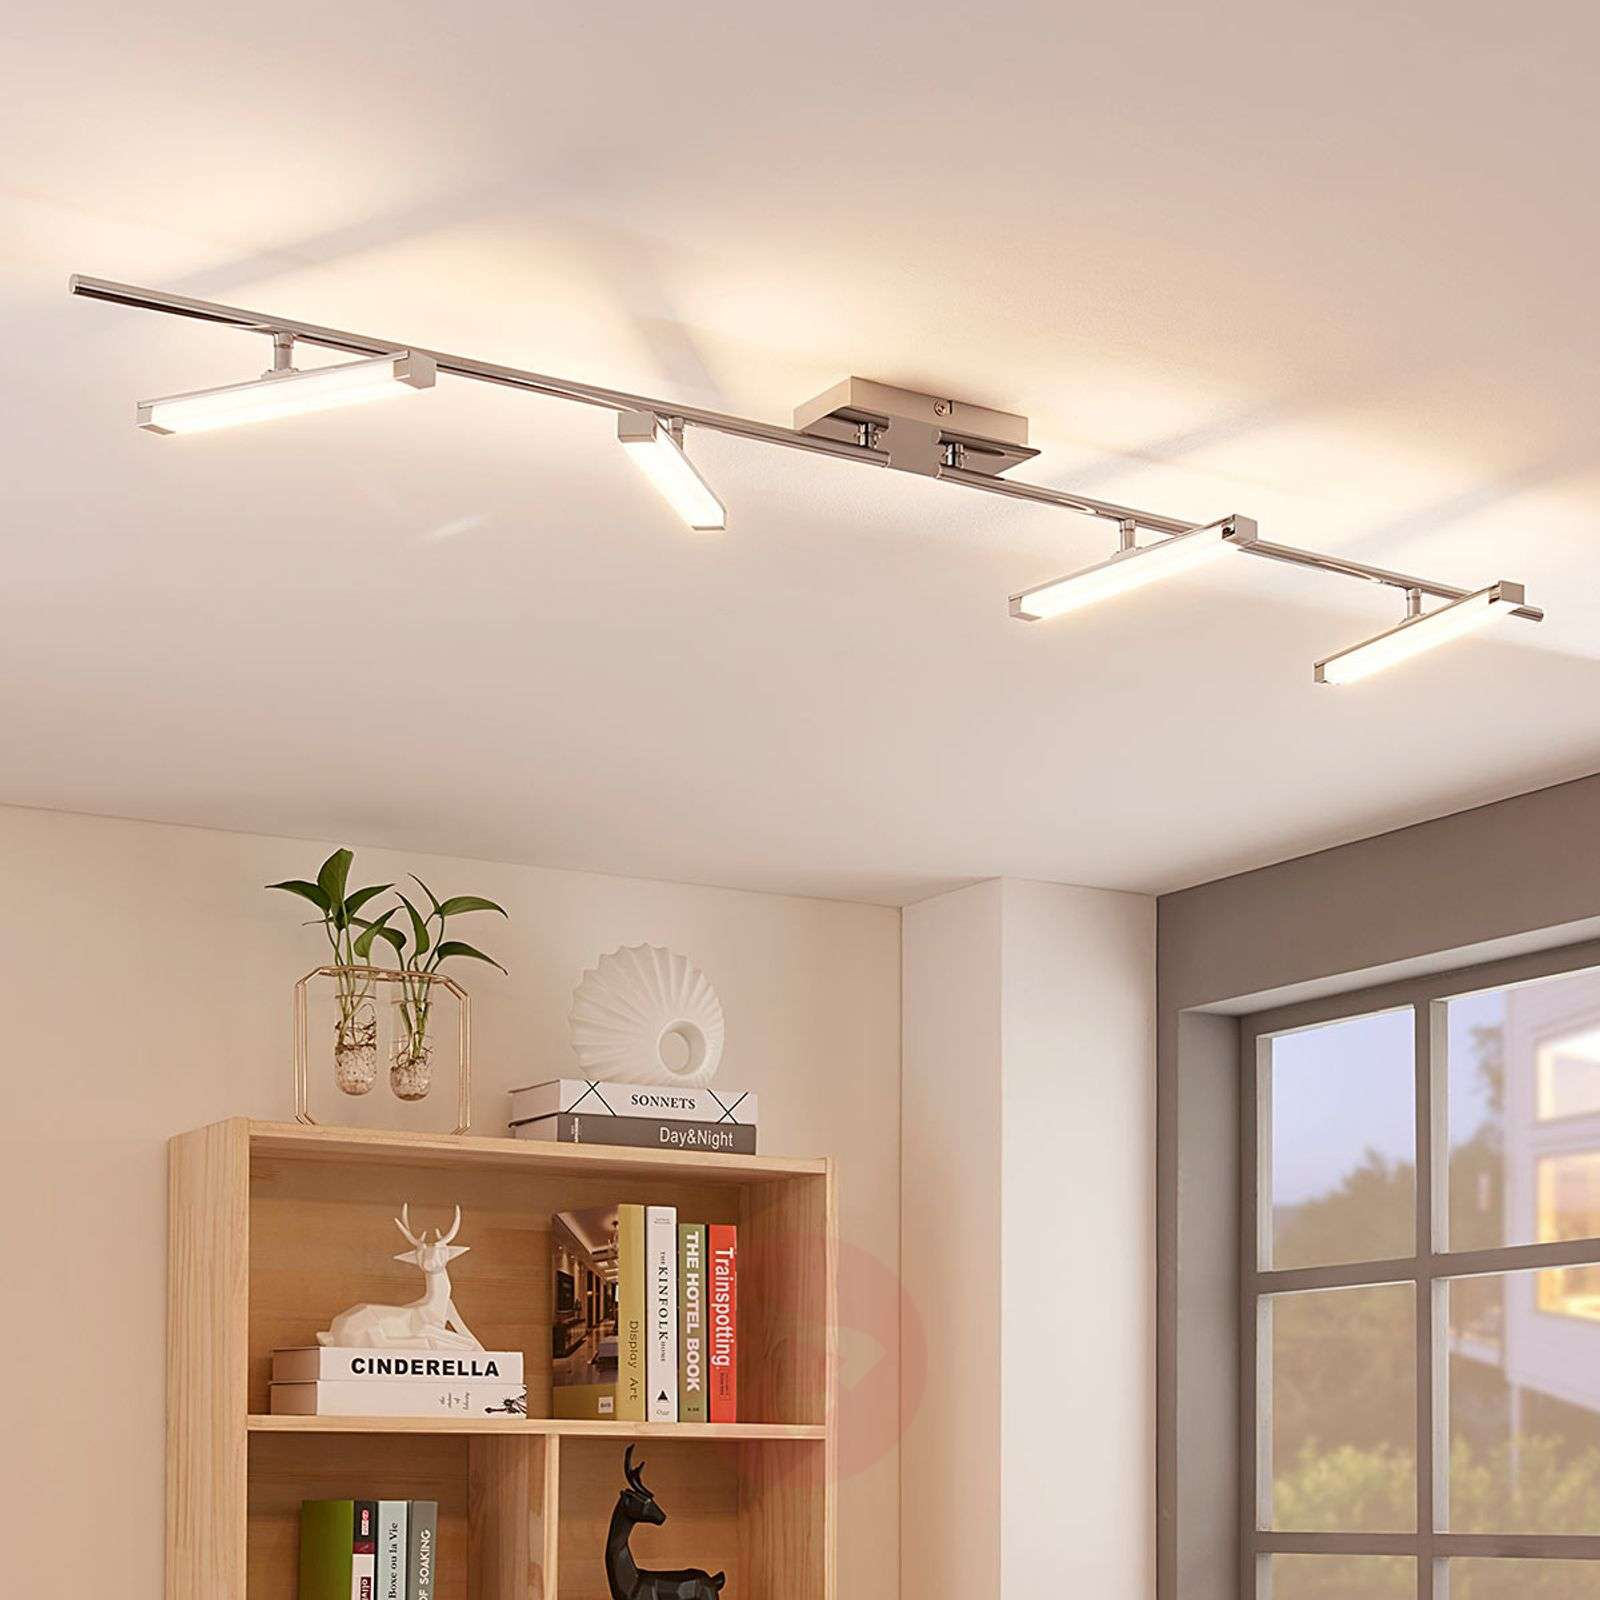 Plafoniere Led A Soffitto Moderno Dimmerabile : Acquista pilou plafoniera led a luci dimmerabile lampade